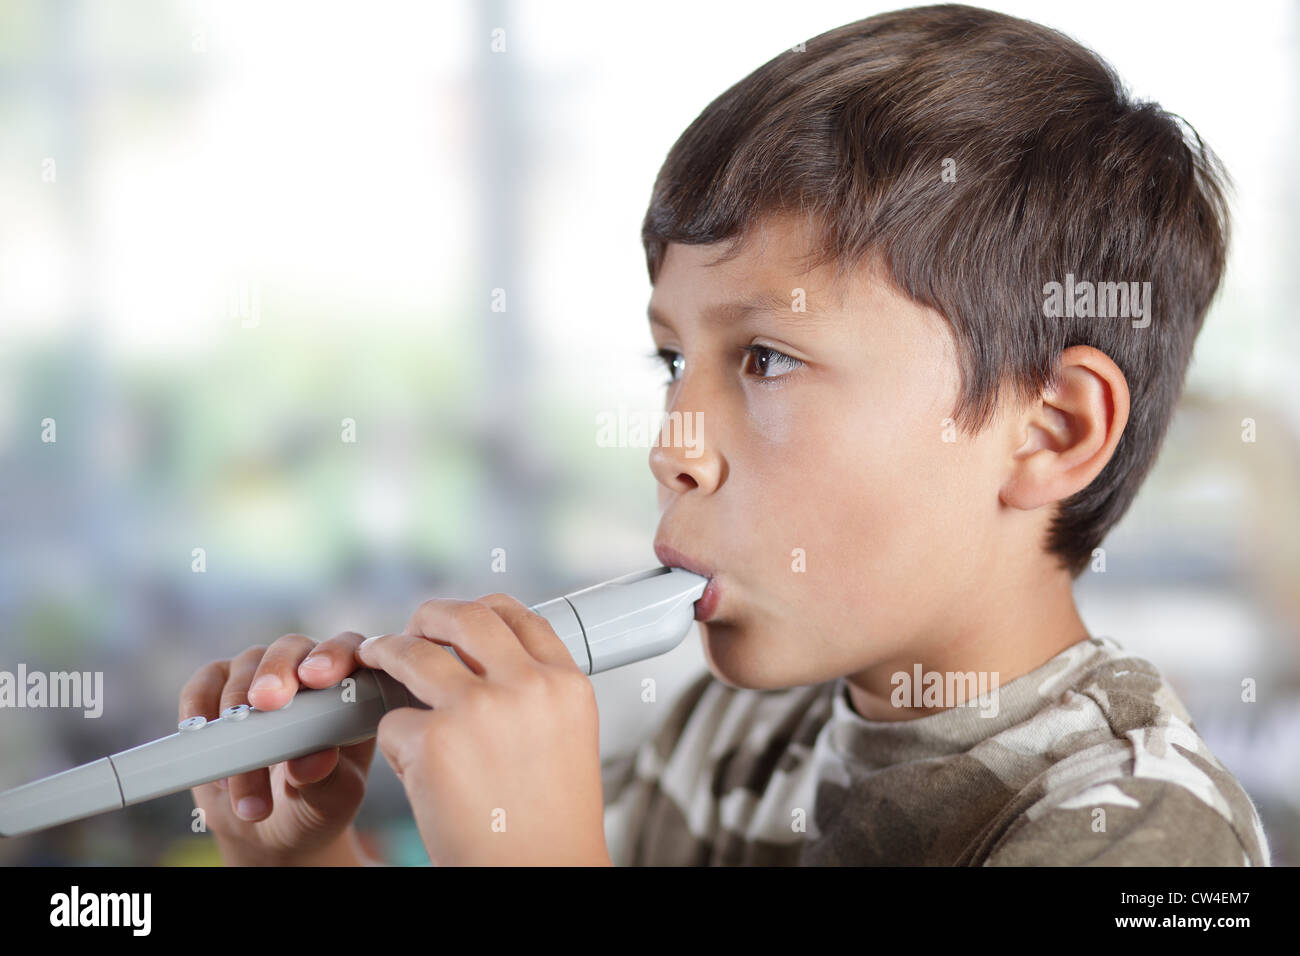 A young boy plays a recorder with concentration - shallow depth of field with copy space to left - Stock Image